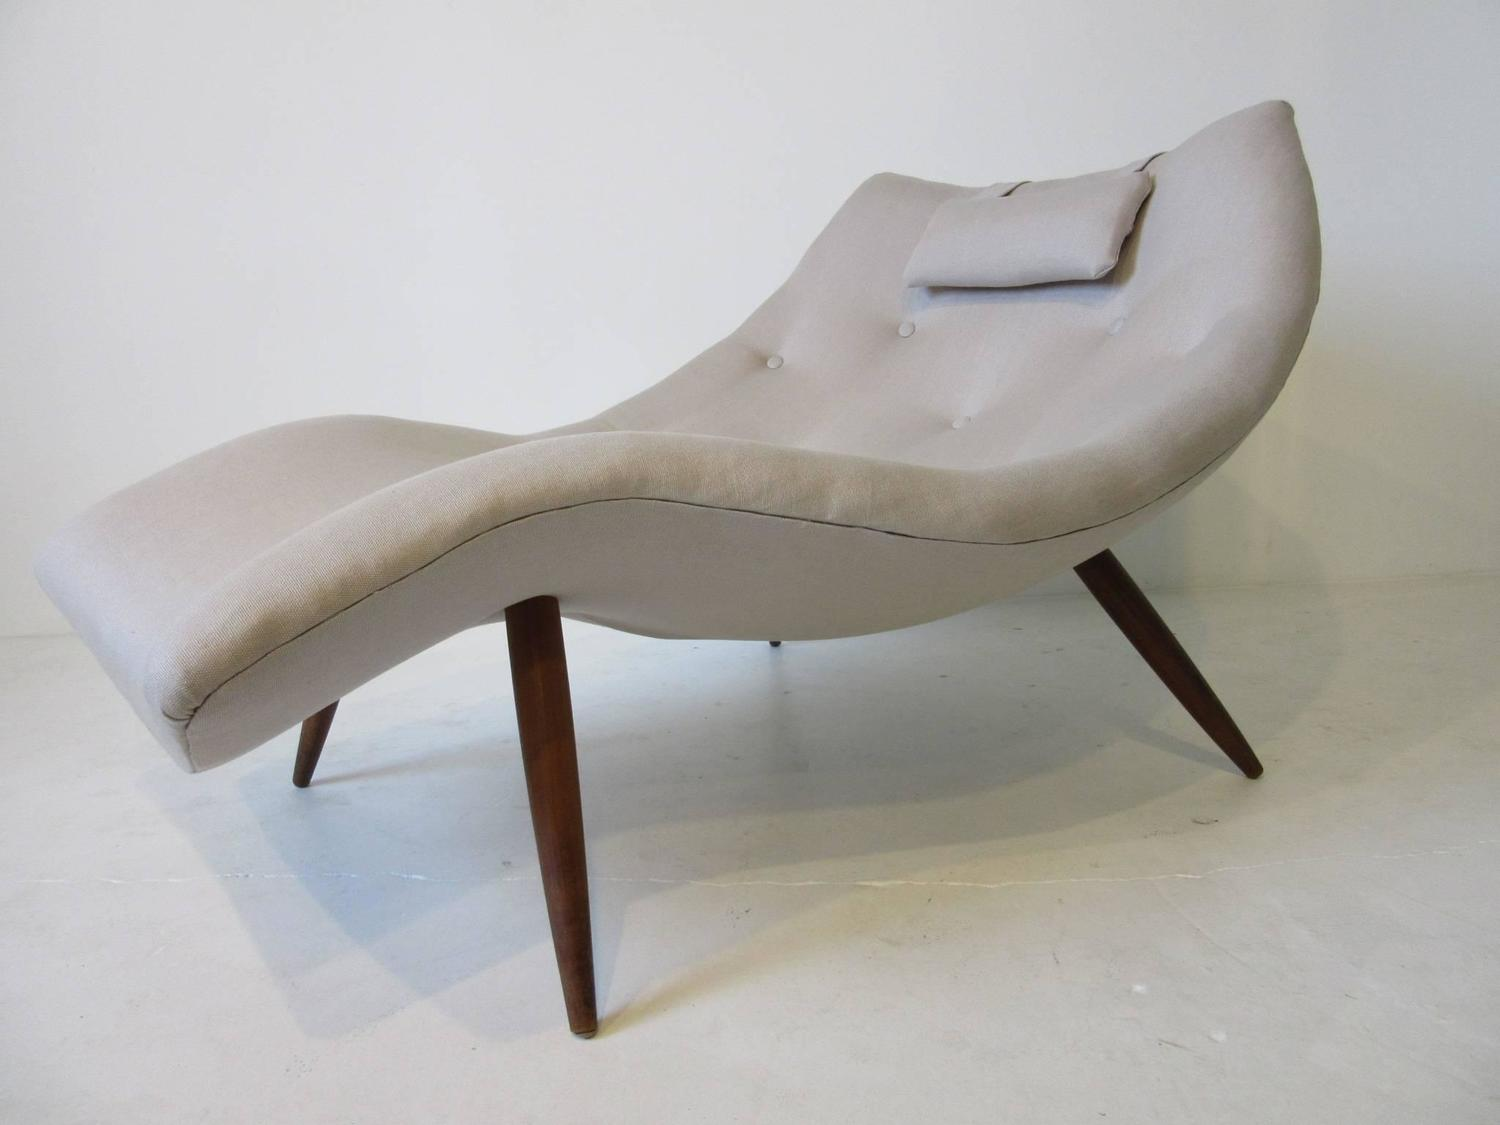 Rare Adrian Pearsall Chaise Lounge Chair For Sale At 1stdibs